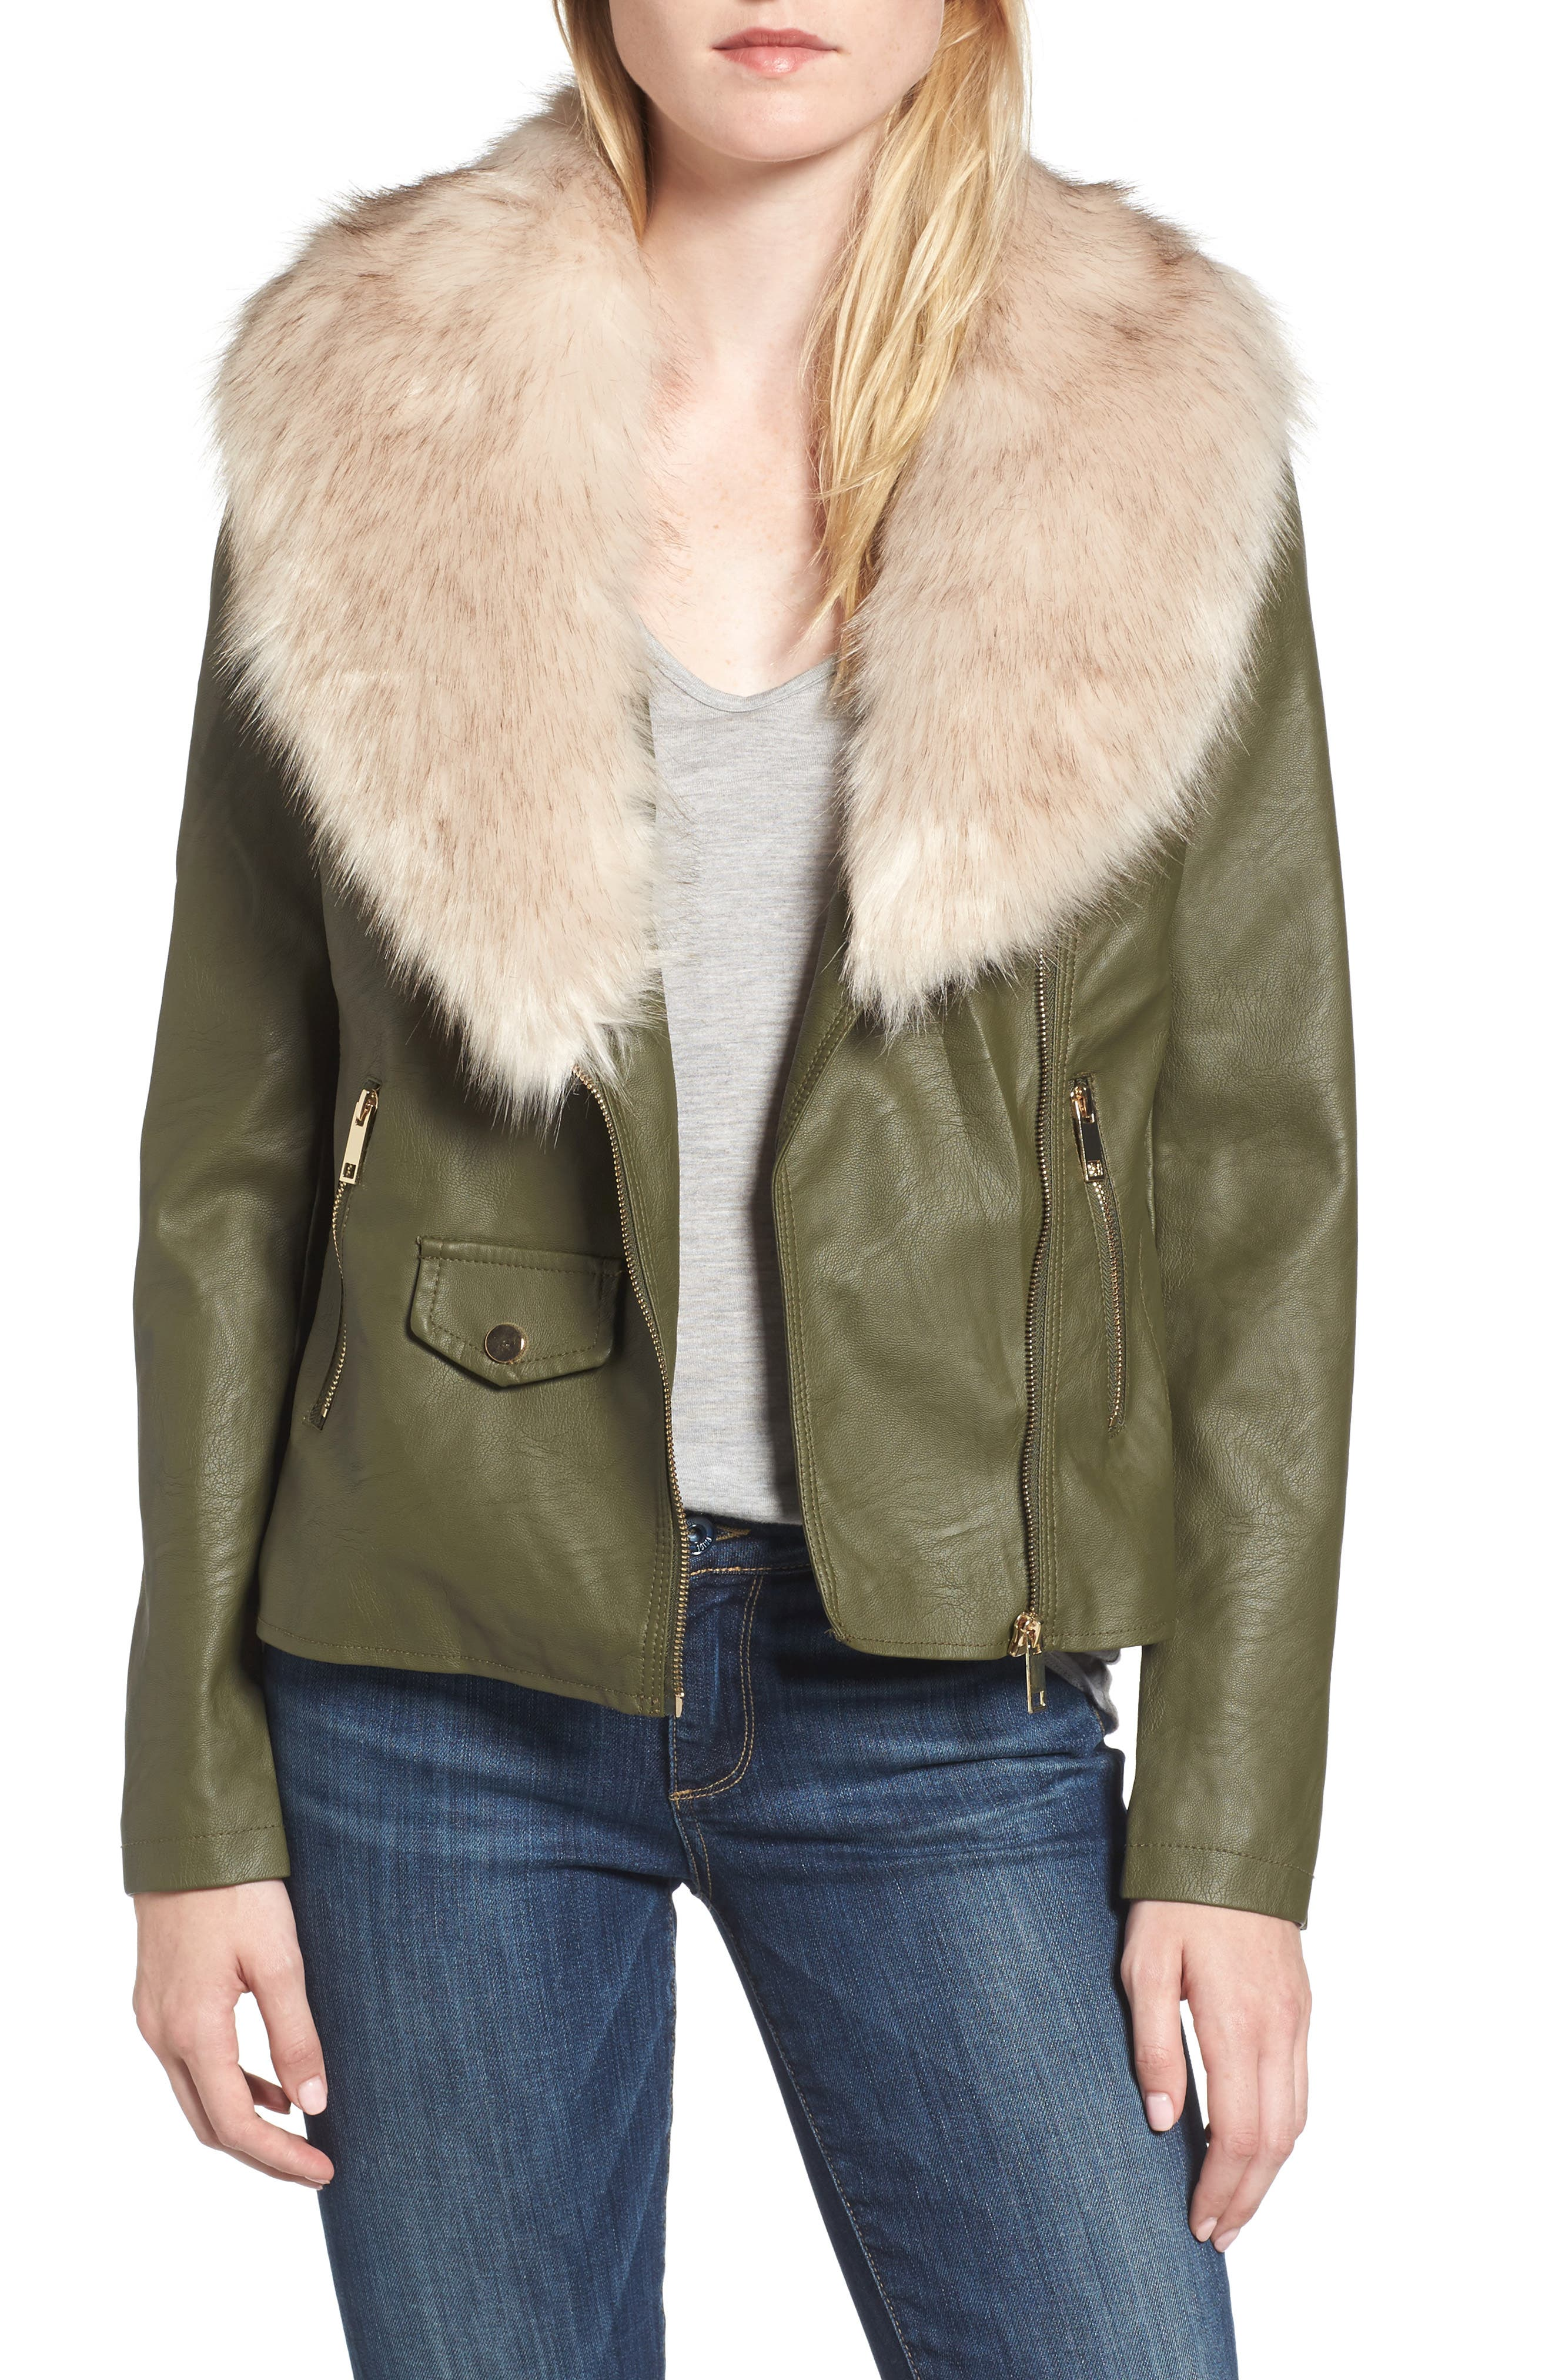 Main Image - Love Token Faux Leather Jacket with Removable Faux Fur Collar